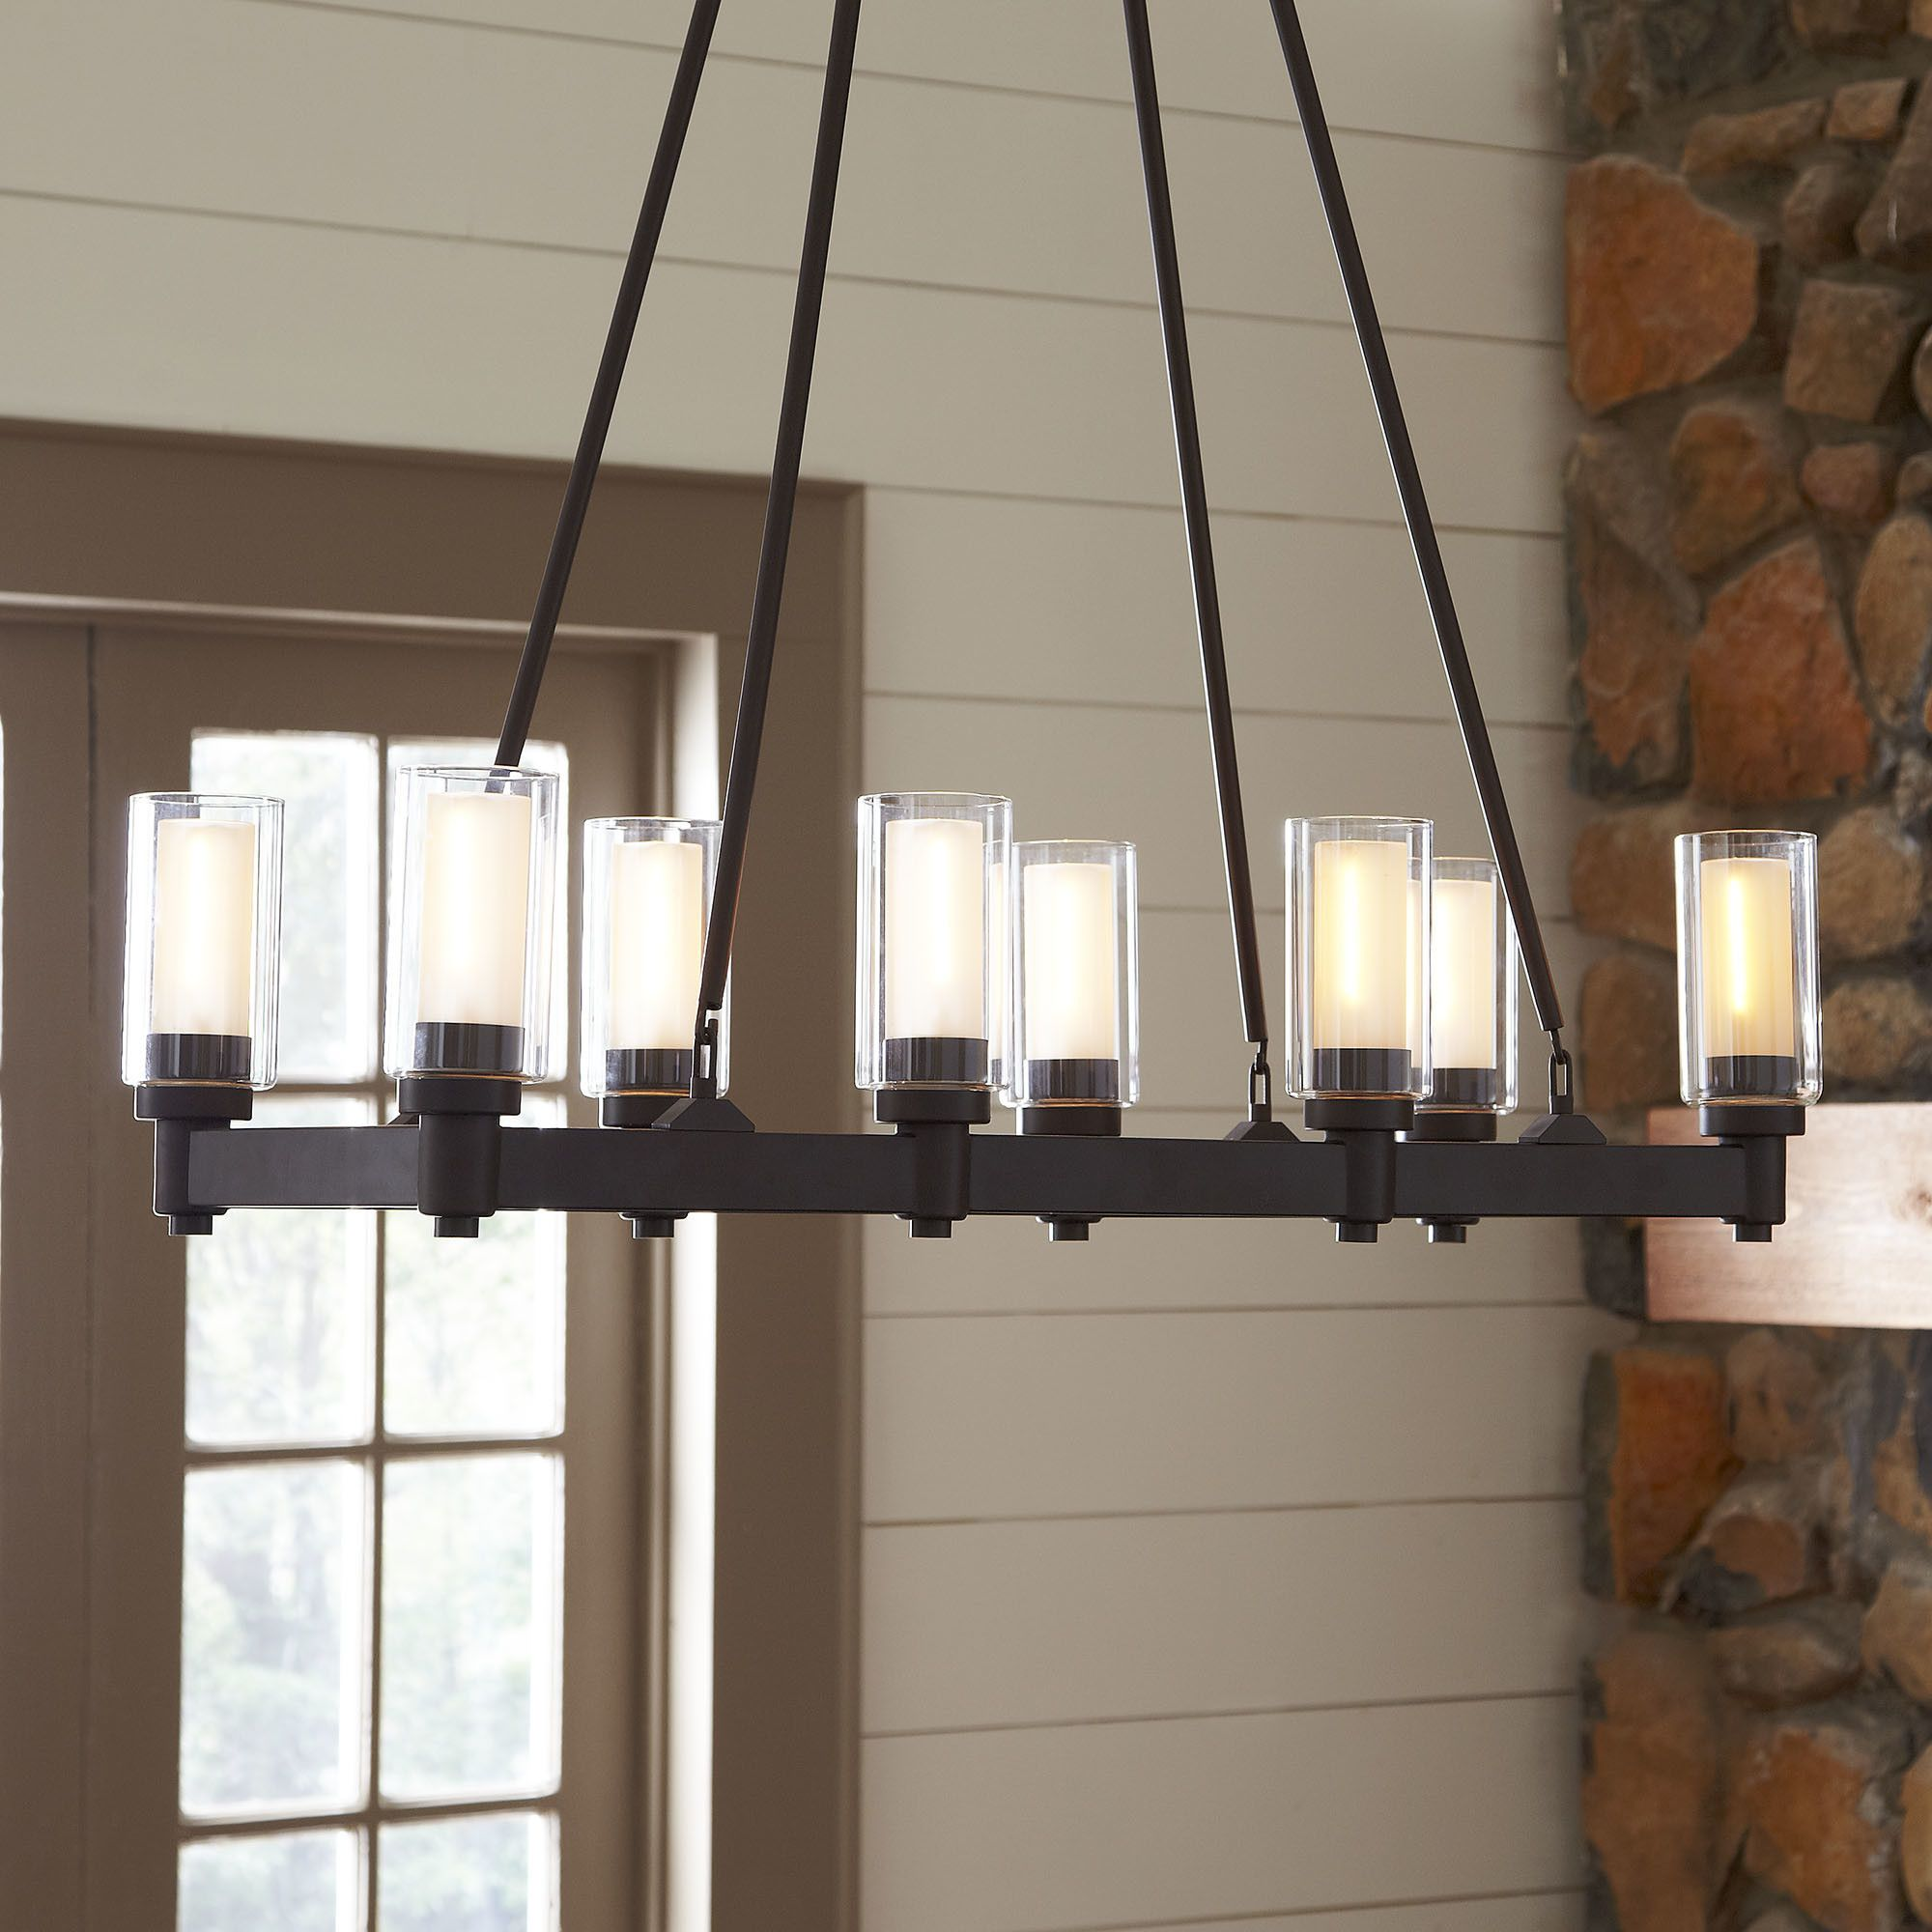 centers arturo chandelier barn sets side media modest pottery entertainment living fireplaces gallery storage light room tables rectangular